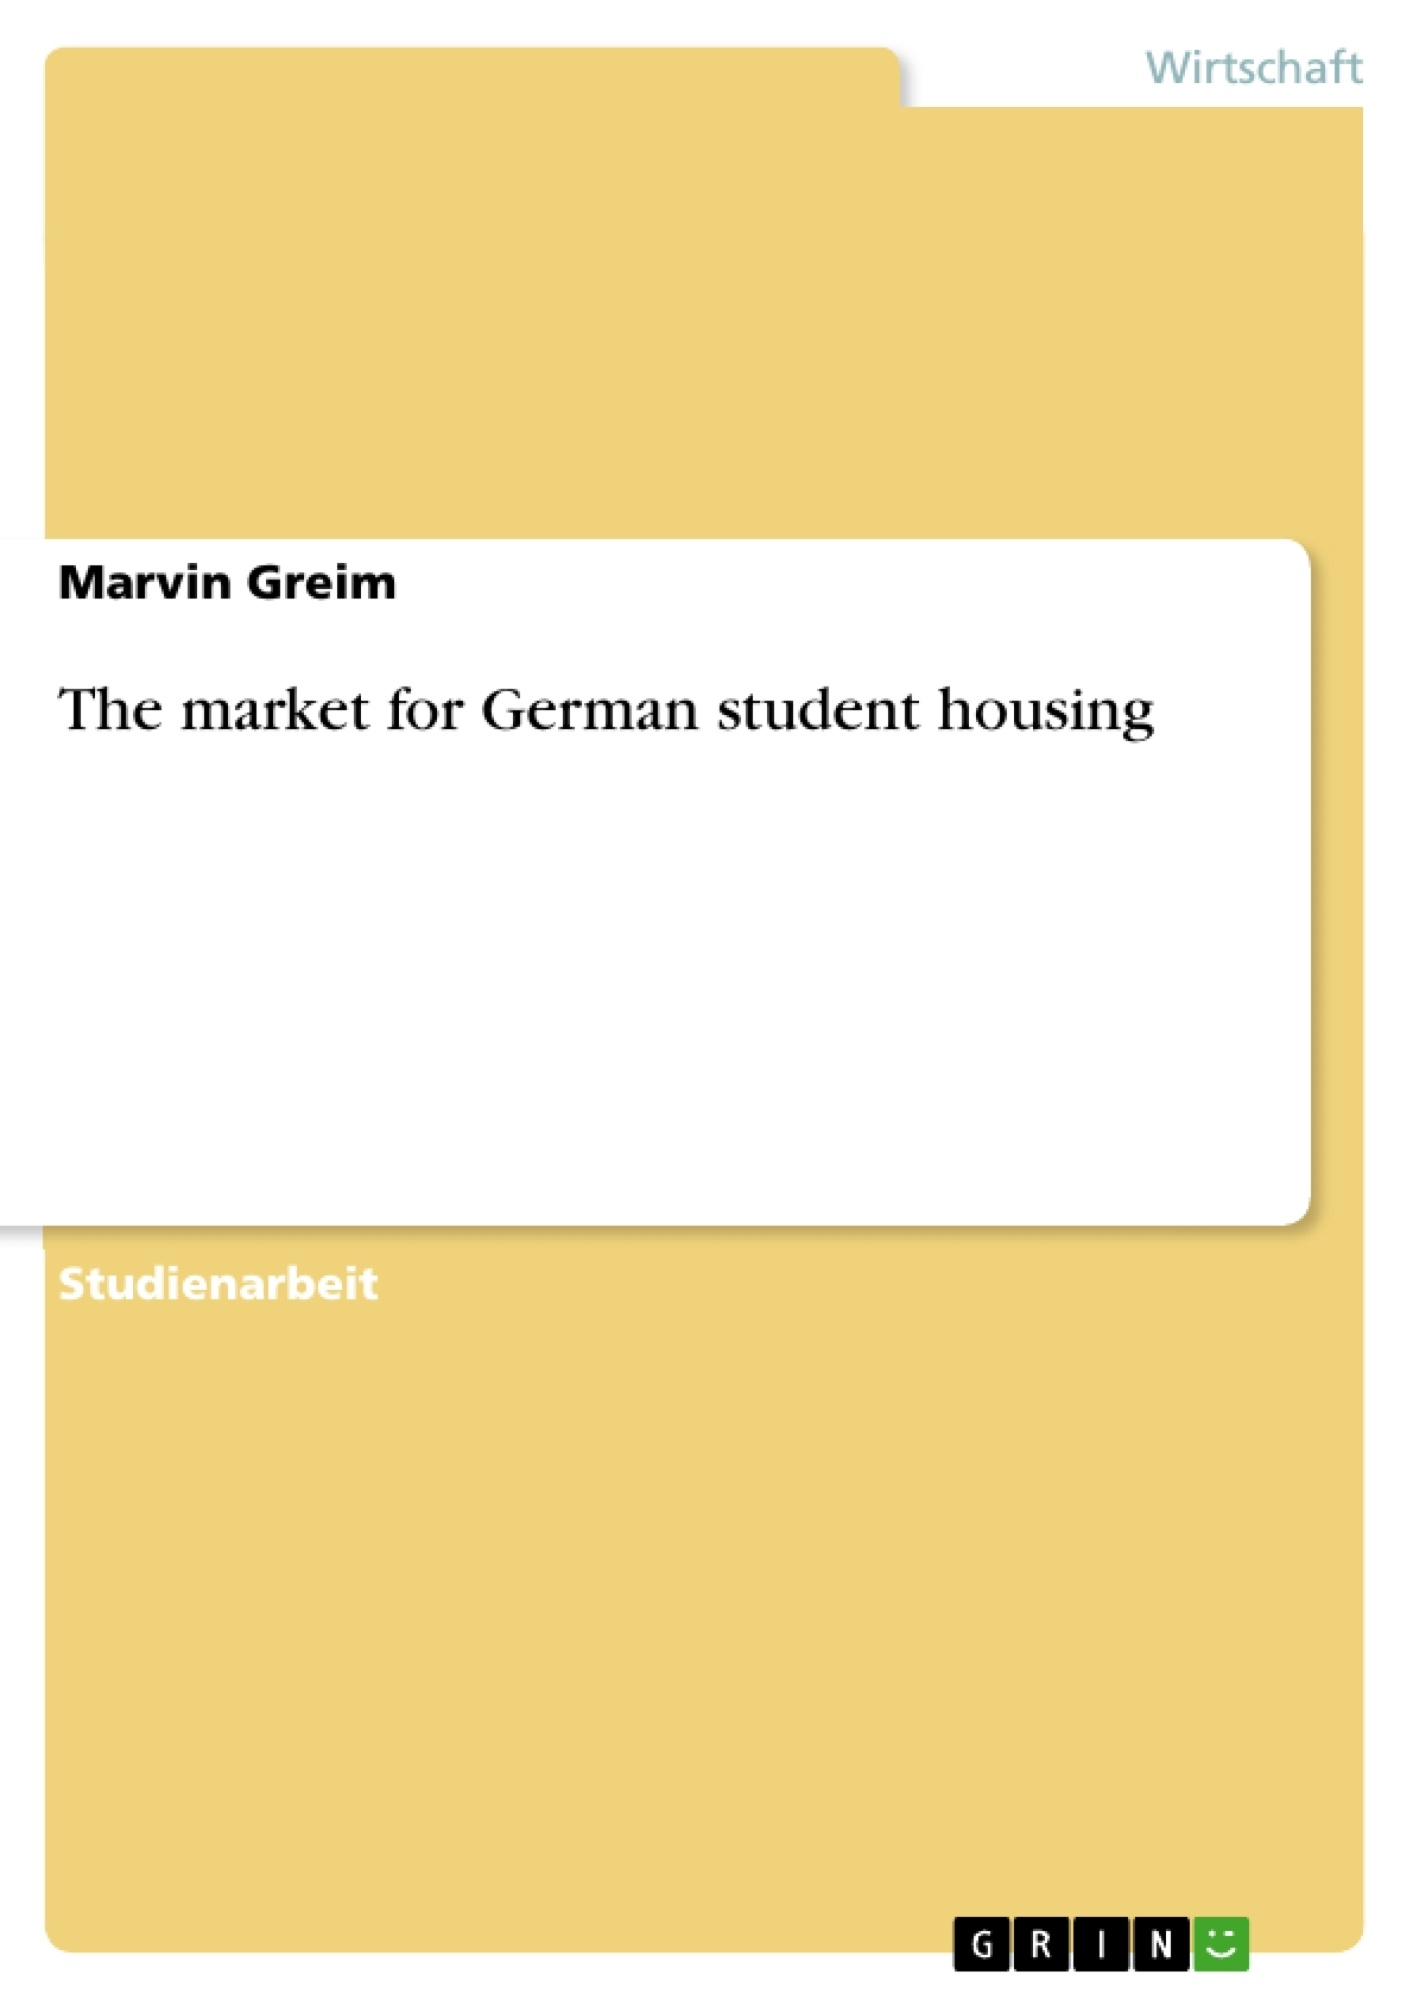 Titel: The market for German student housing